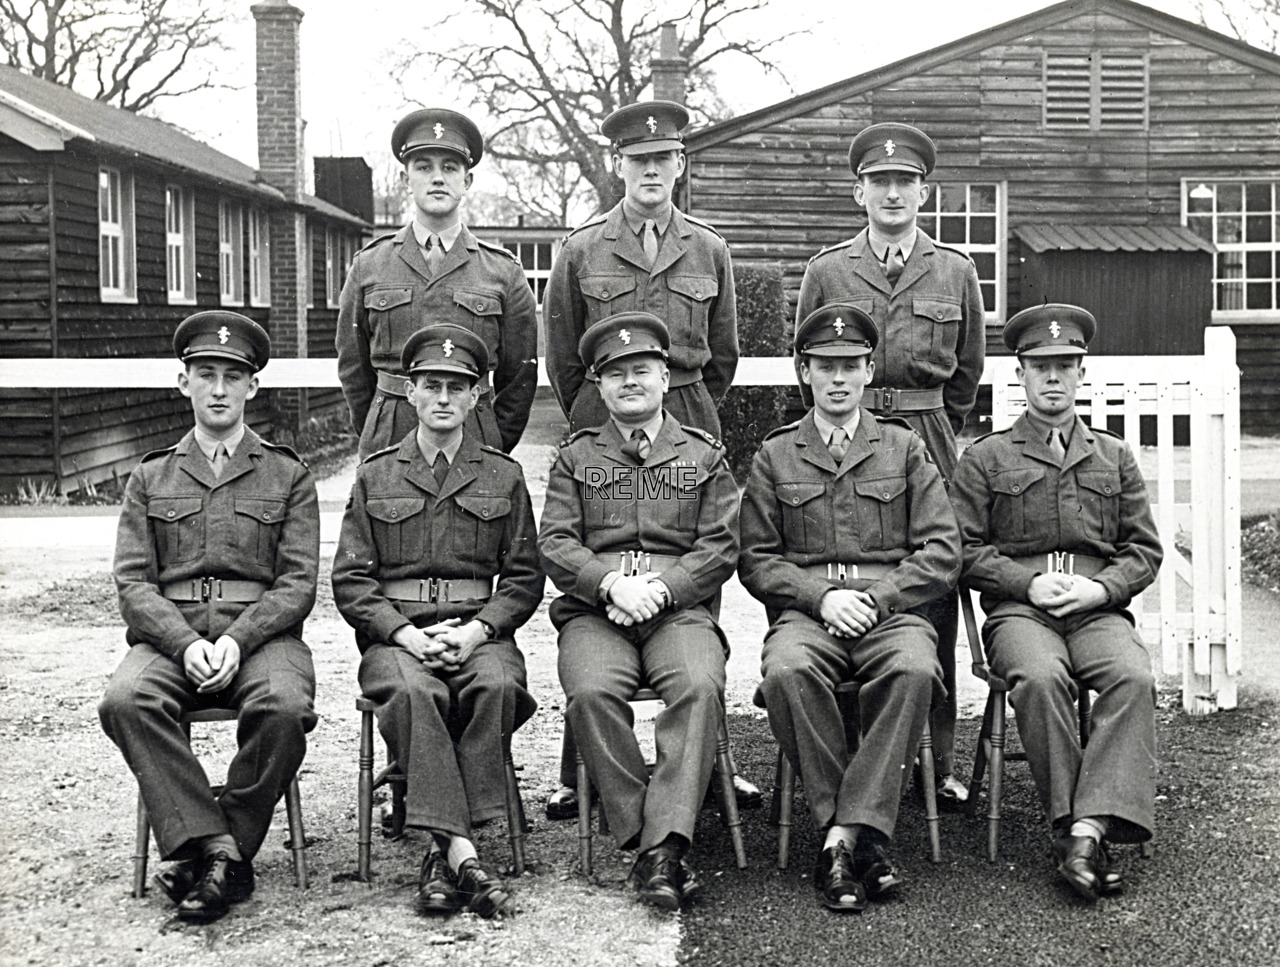 No 19 Regular Young Officers' Course, REME Officers' School, 1957